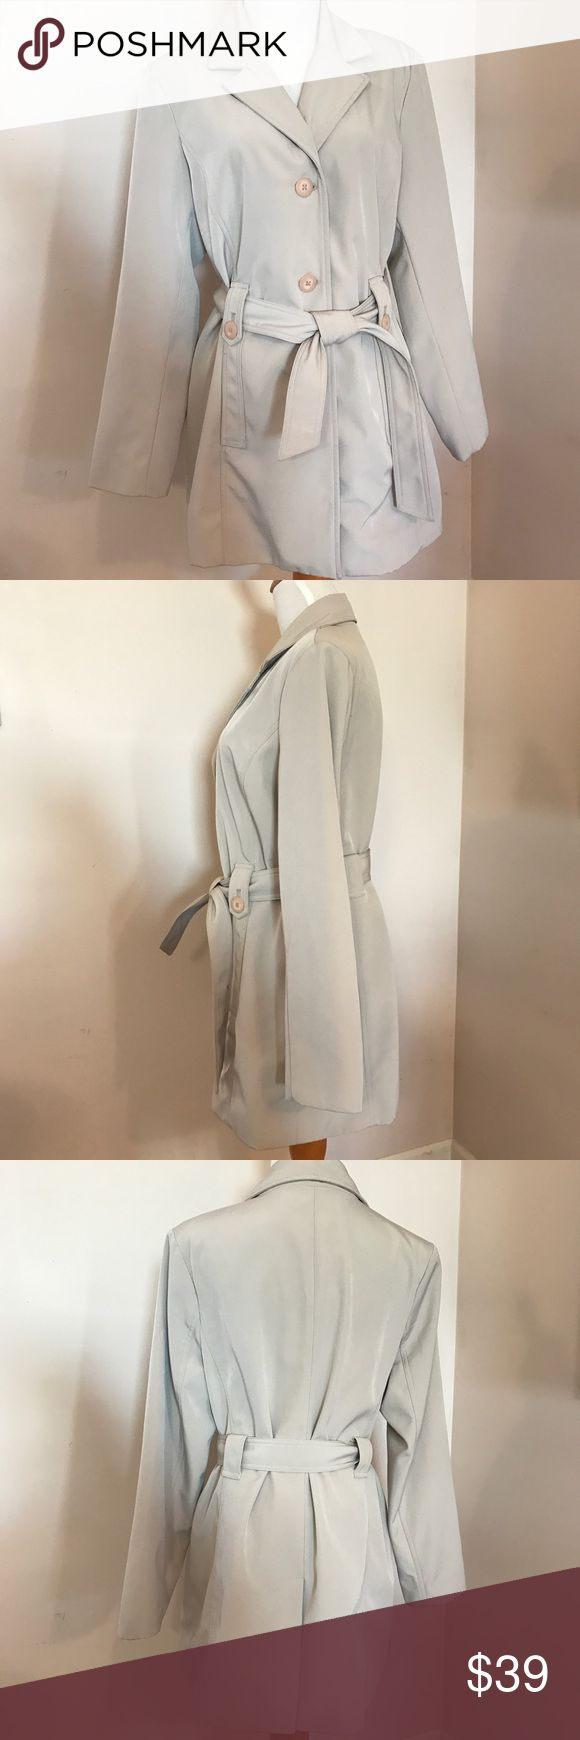 Wonderful Neutral Belted Trench Sometimes Merona goes above and beyond with their designs particularly this one. This is just a fantastic little water resistant coat for spring and summer. Classic style, great water resistant fabric. No flaws, perfect. No trades or lowball offers please. Merona Jackets & Coats Trench Coats